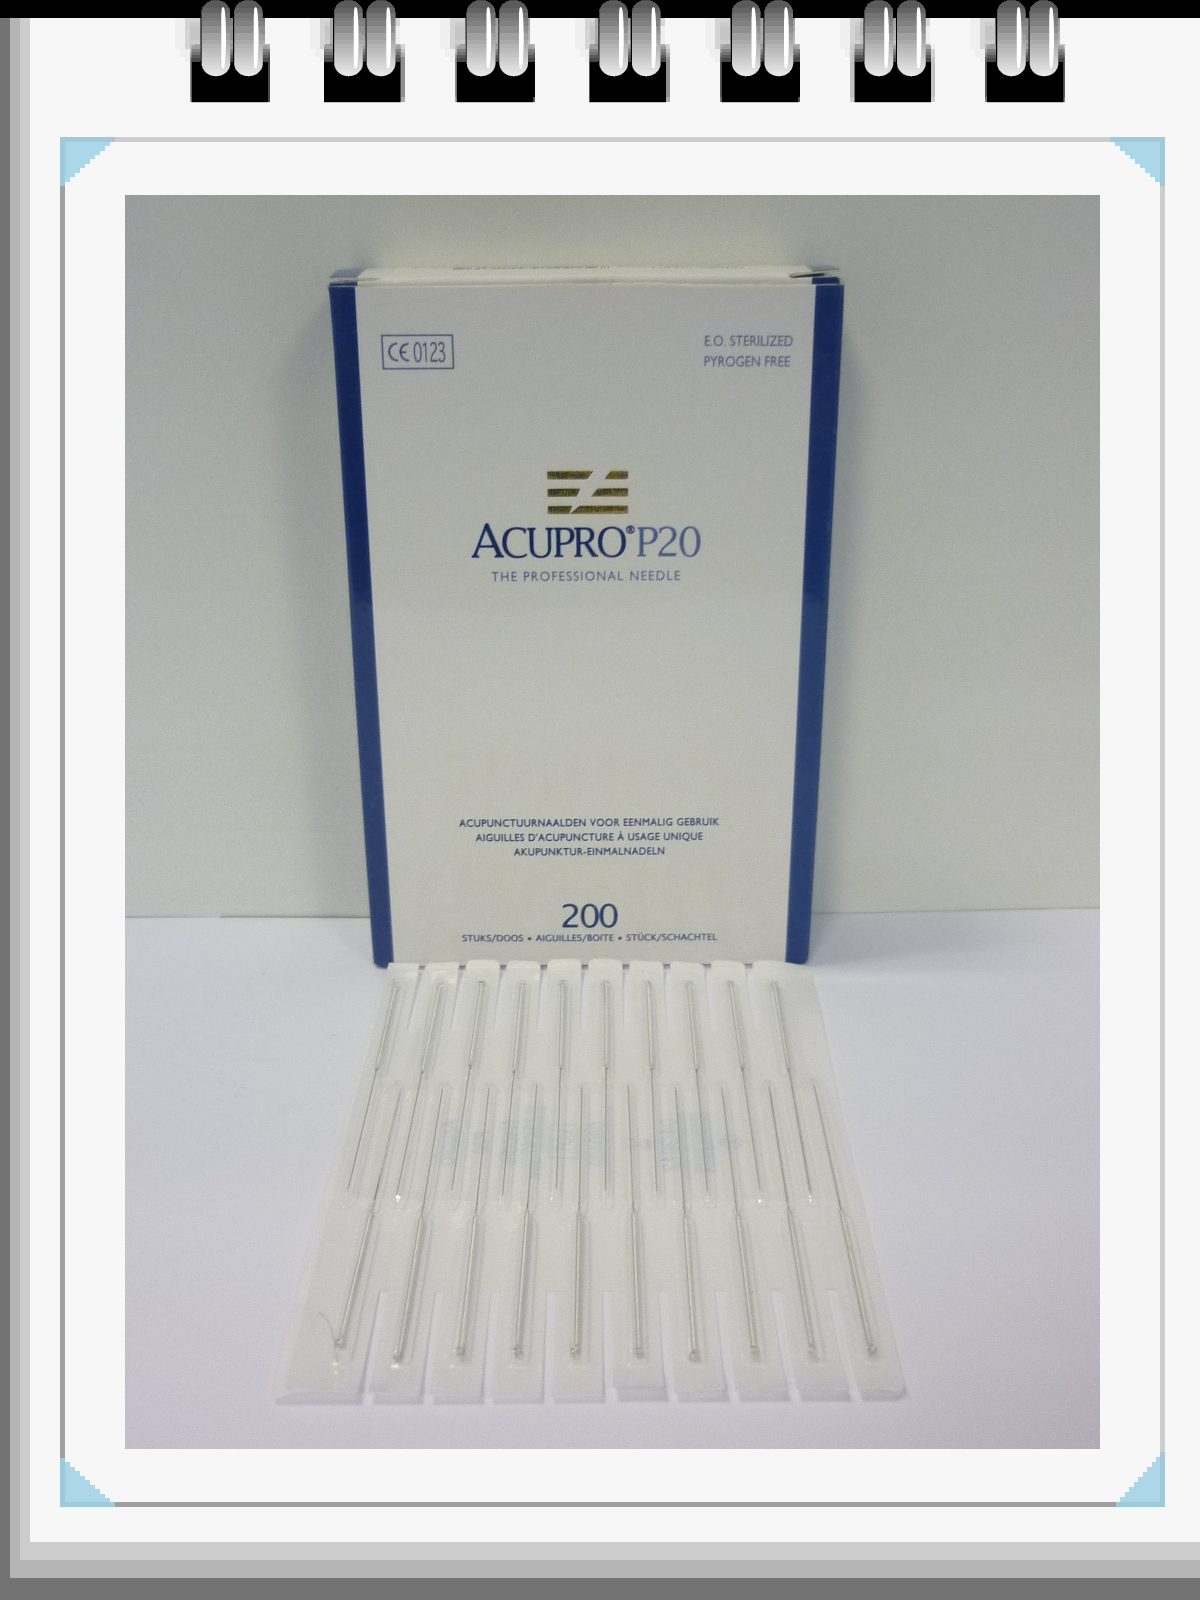 All Products - Acupunctuurnaalden: 0,22 x 40mm, p--200